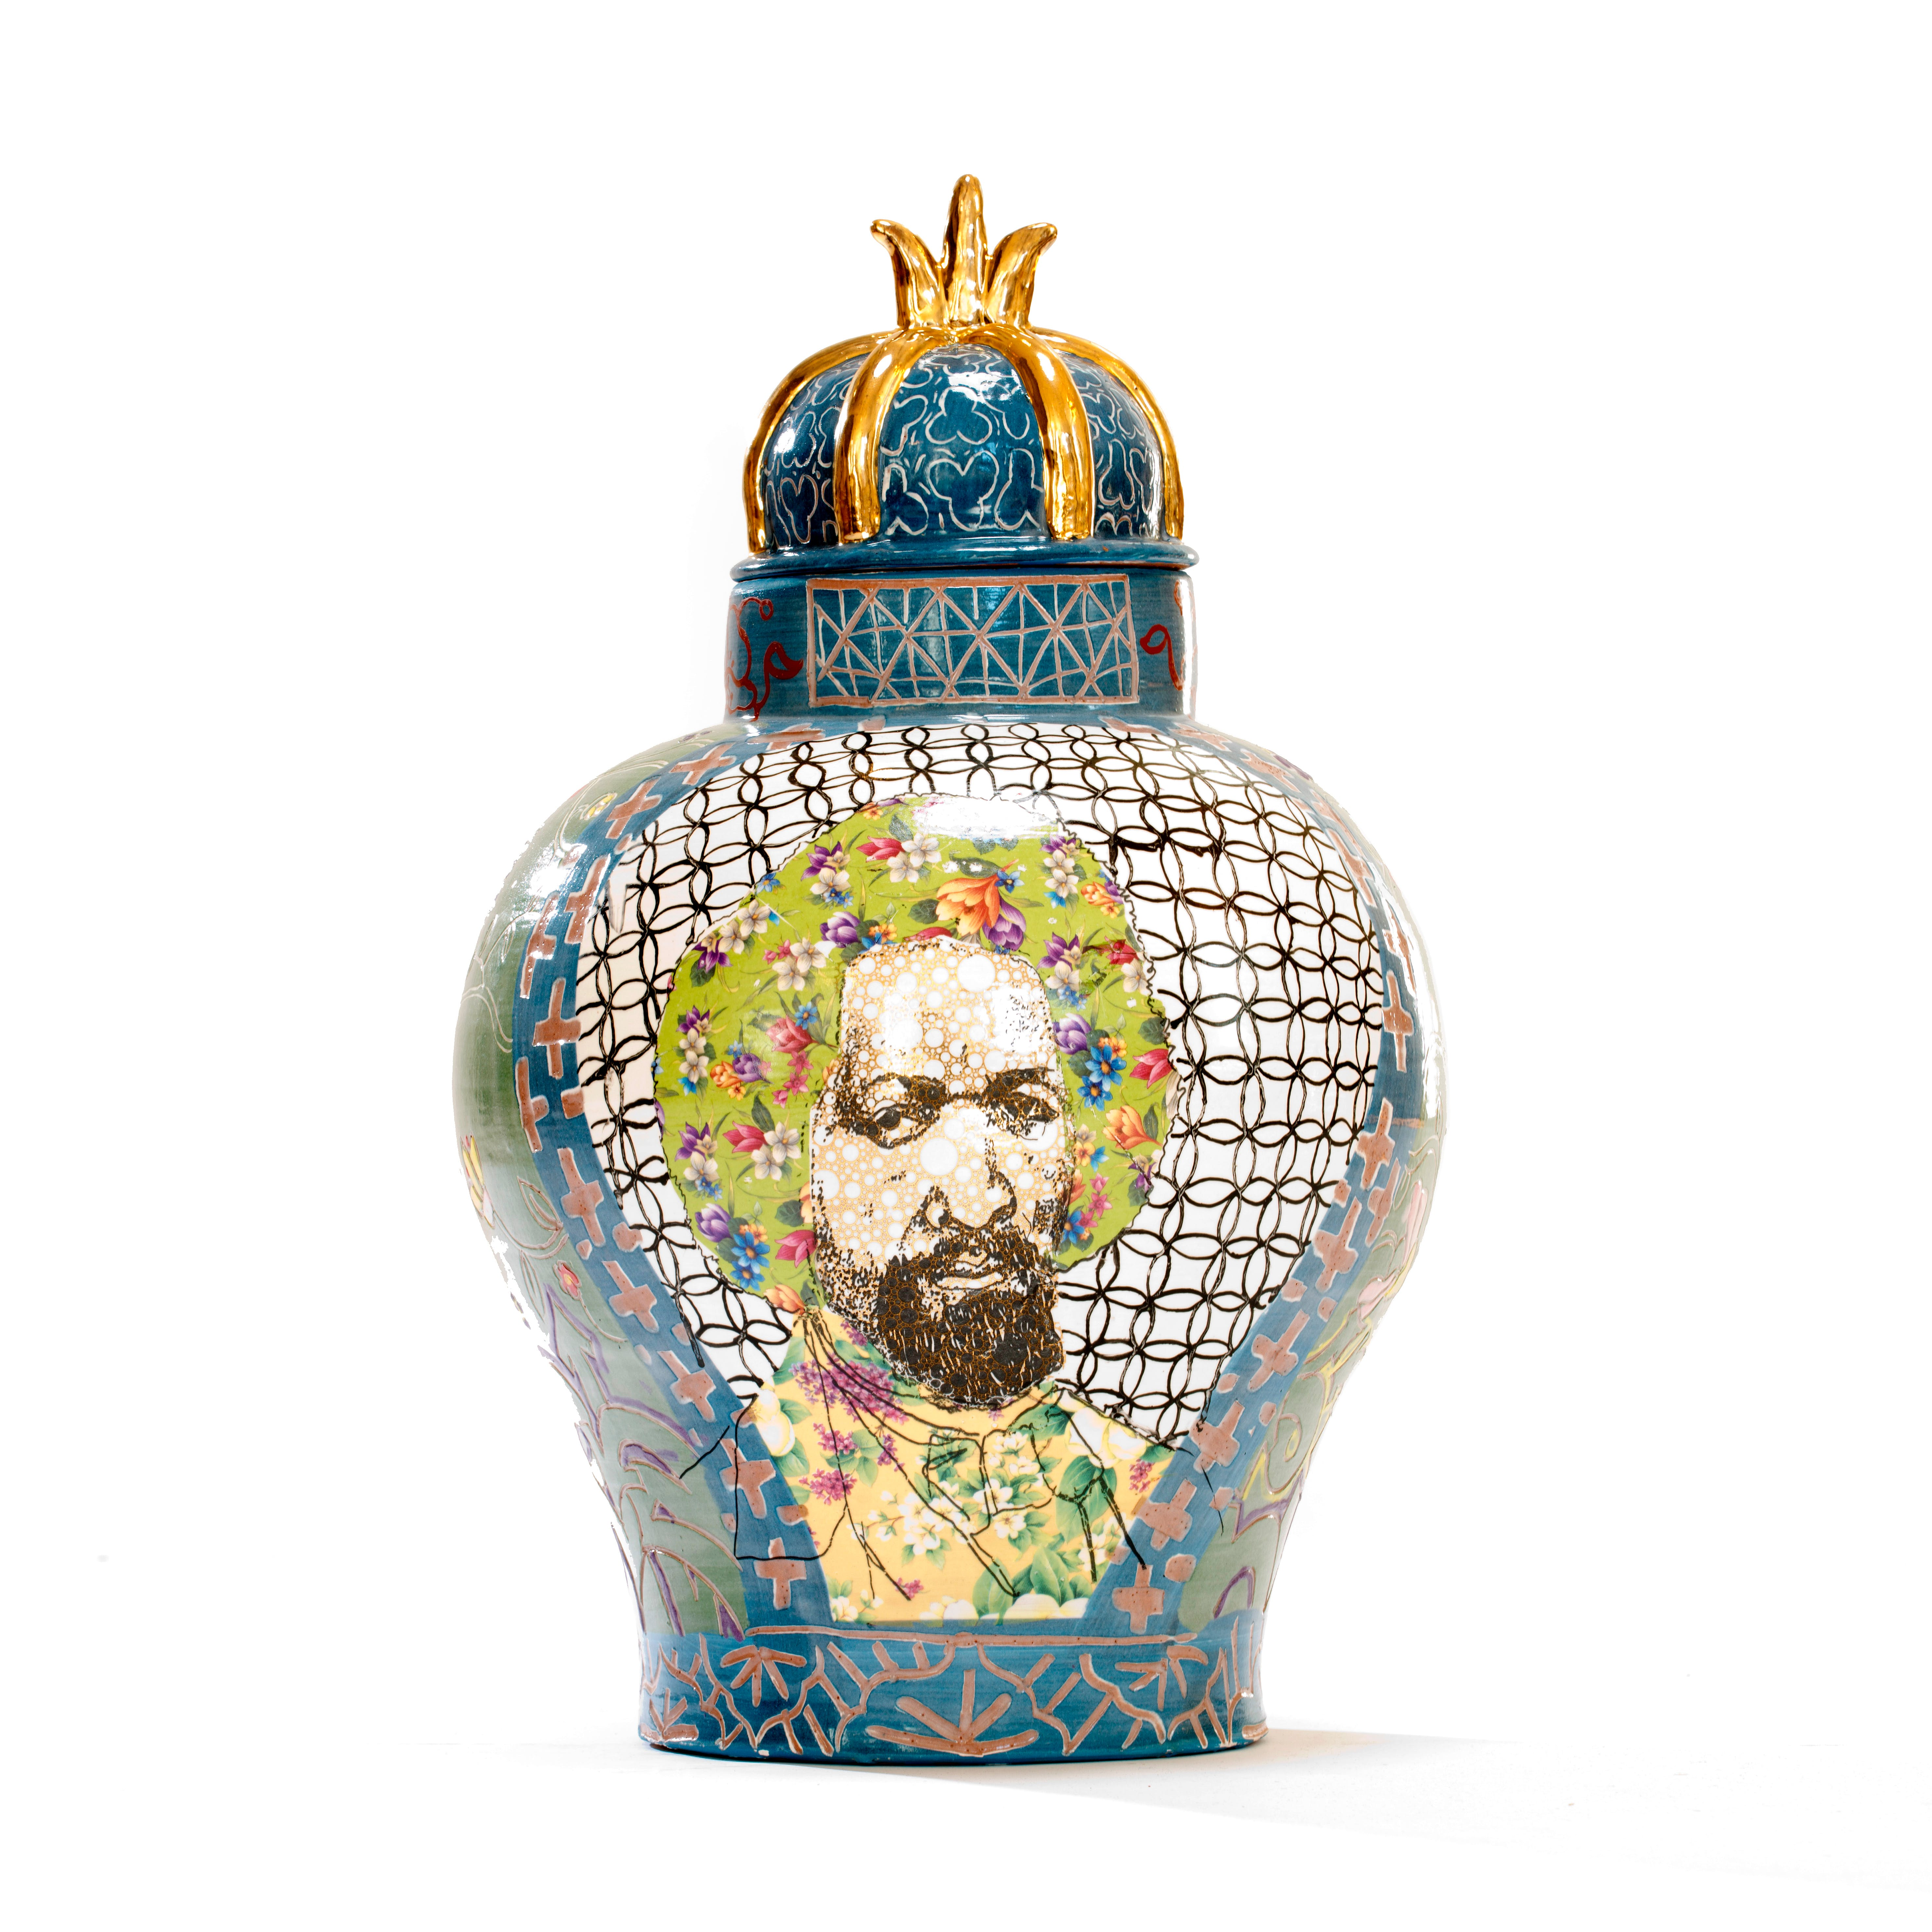 Colorful ceramic urn with face of Frederick Douglass